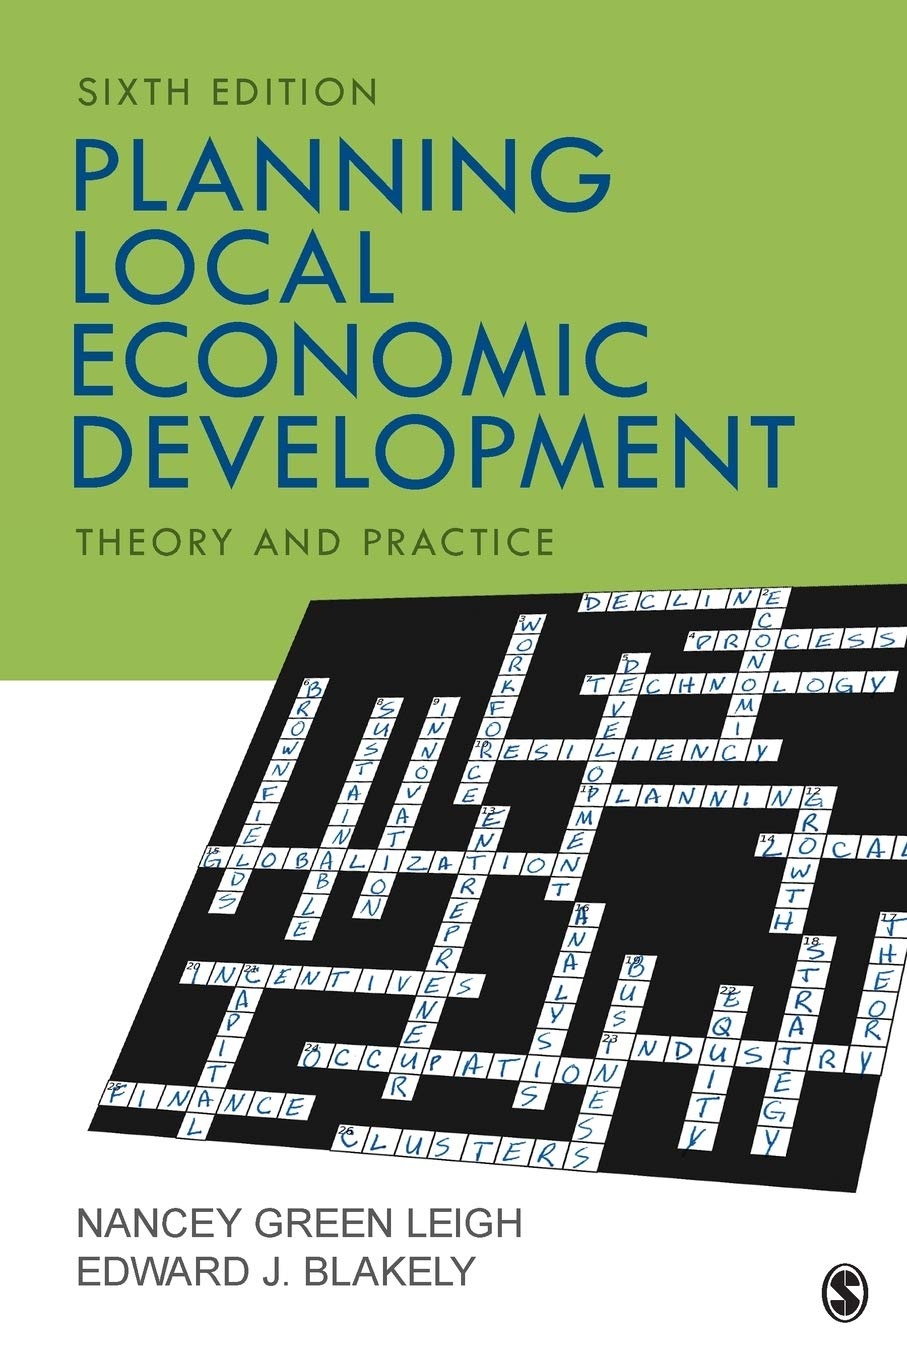 Planning Local Economic Development: Theory and Practice (NULL) by SAGE Publications, Inc